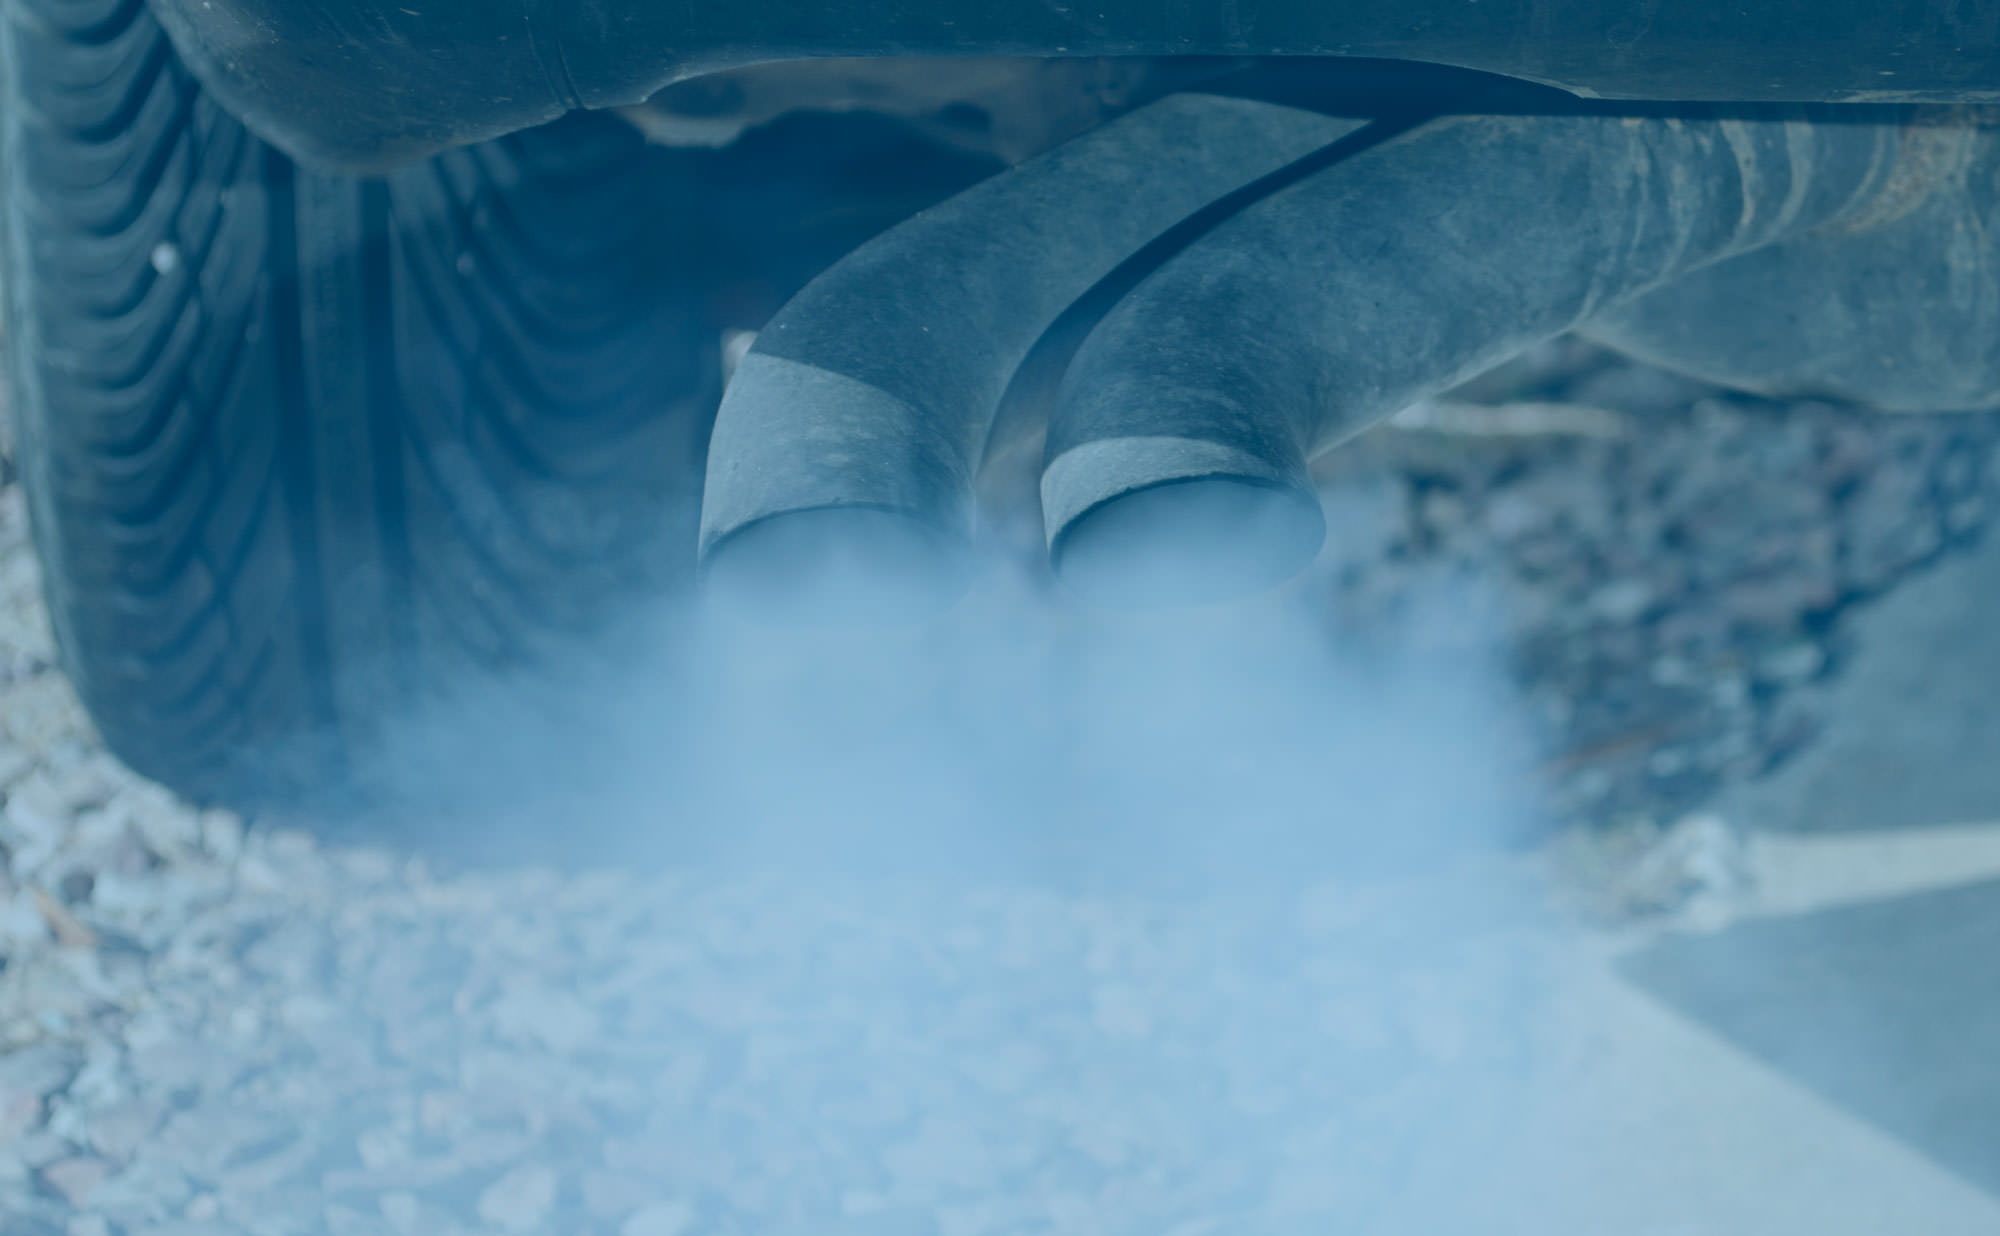 Exhaust Pipe Smoke Part 1: Blue